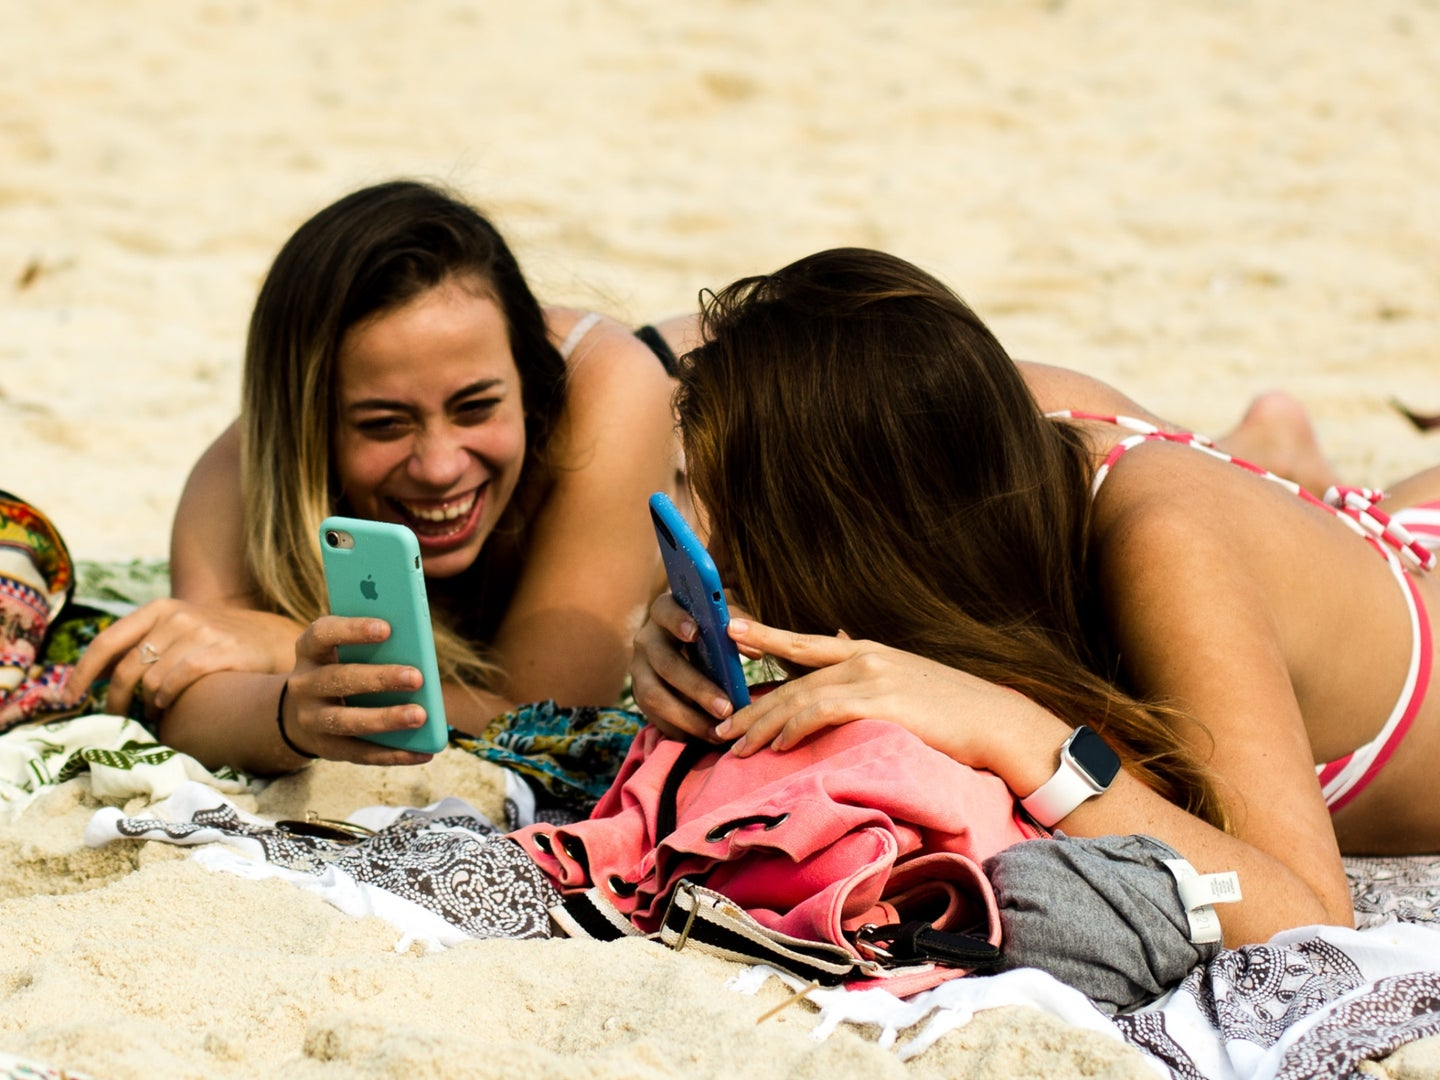 two people on the beach with their phones